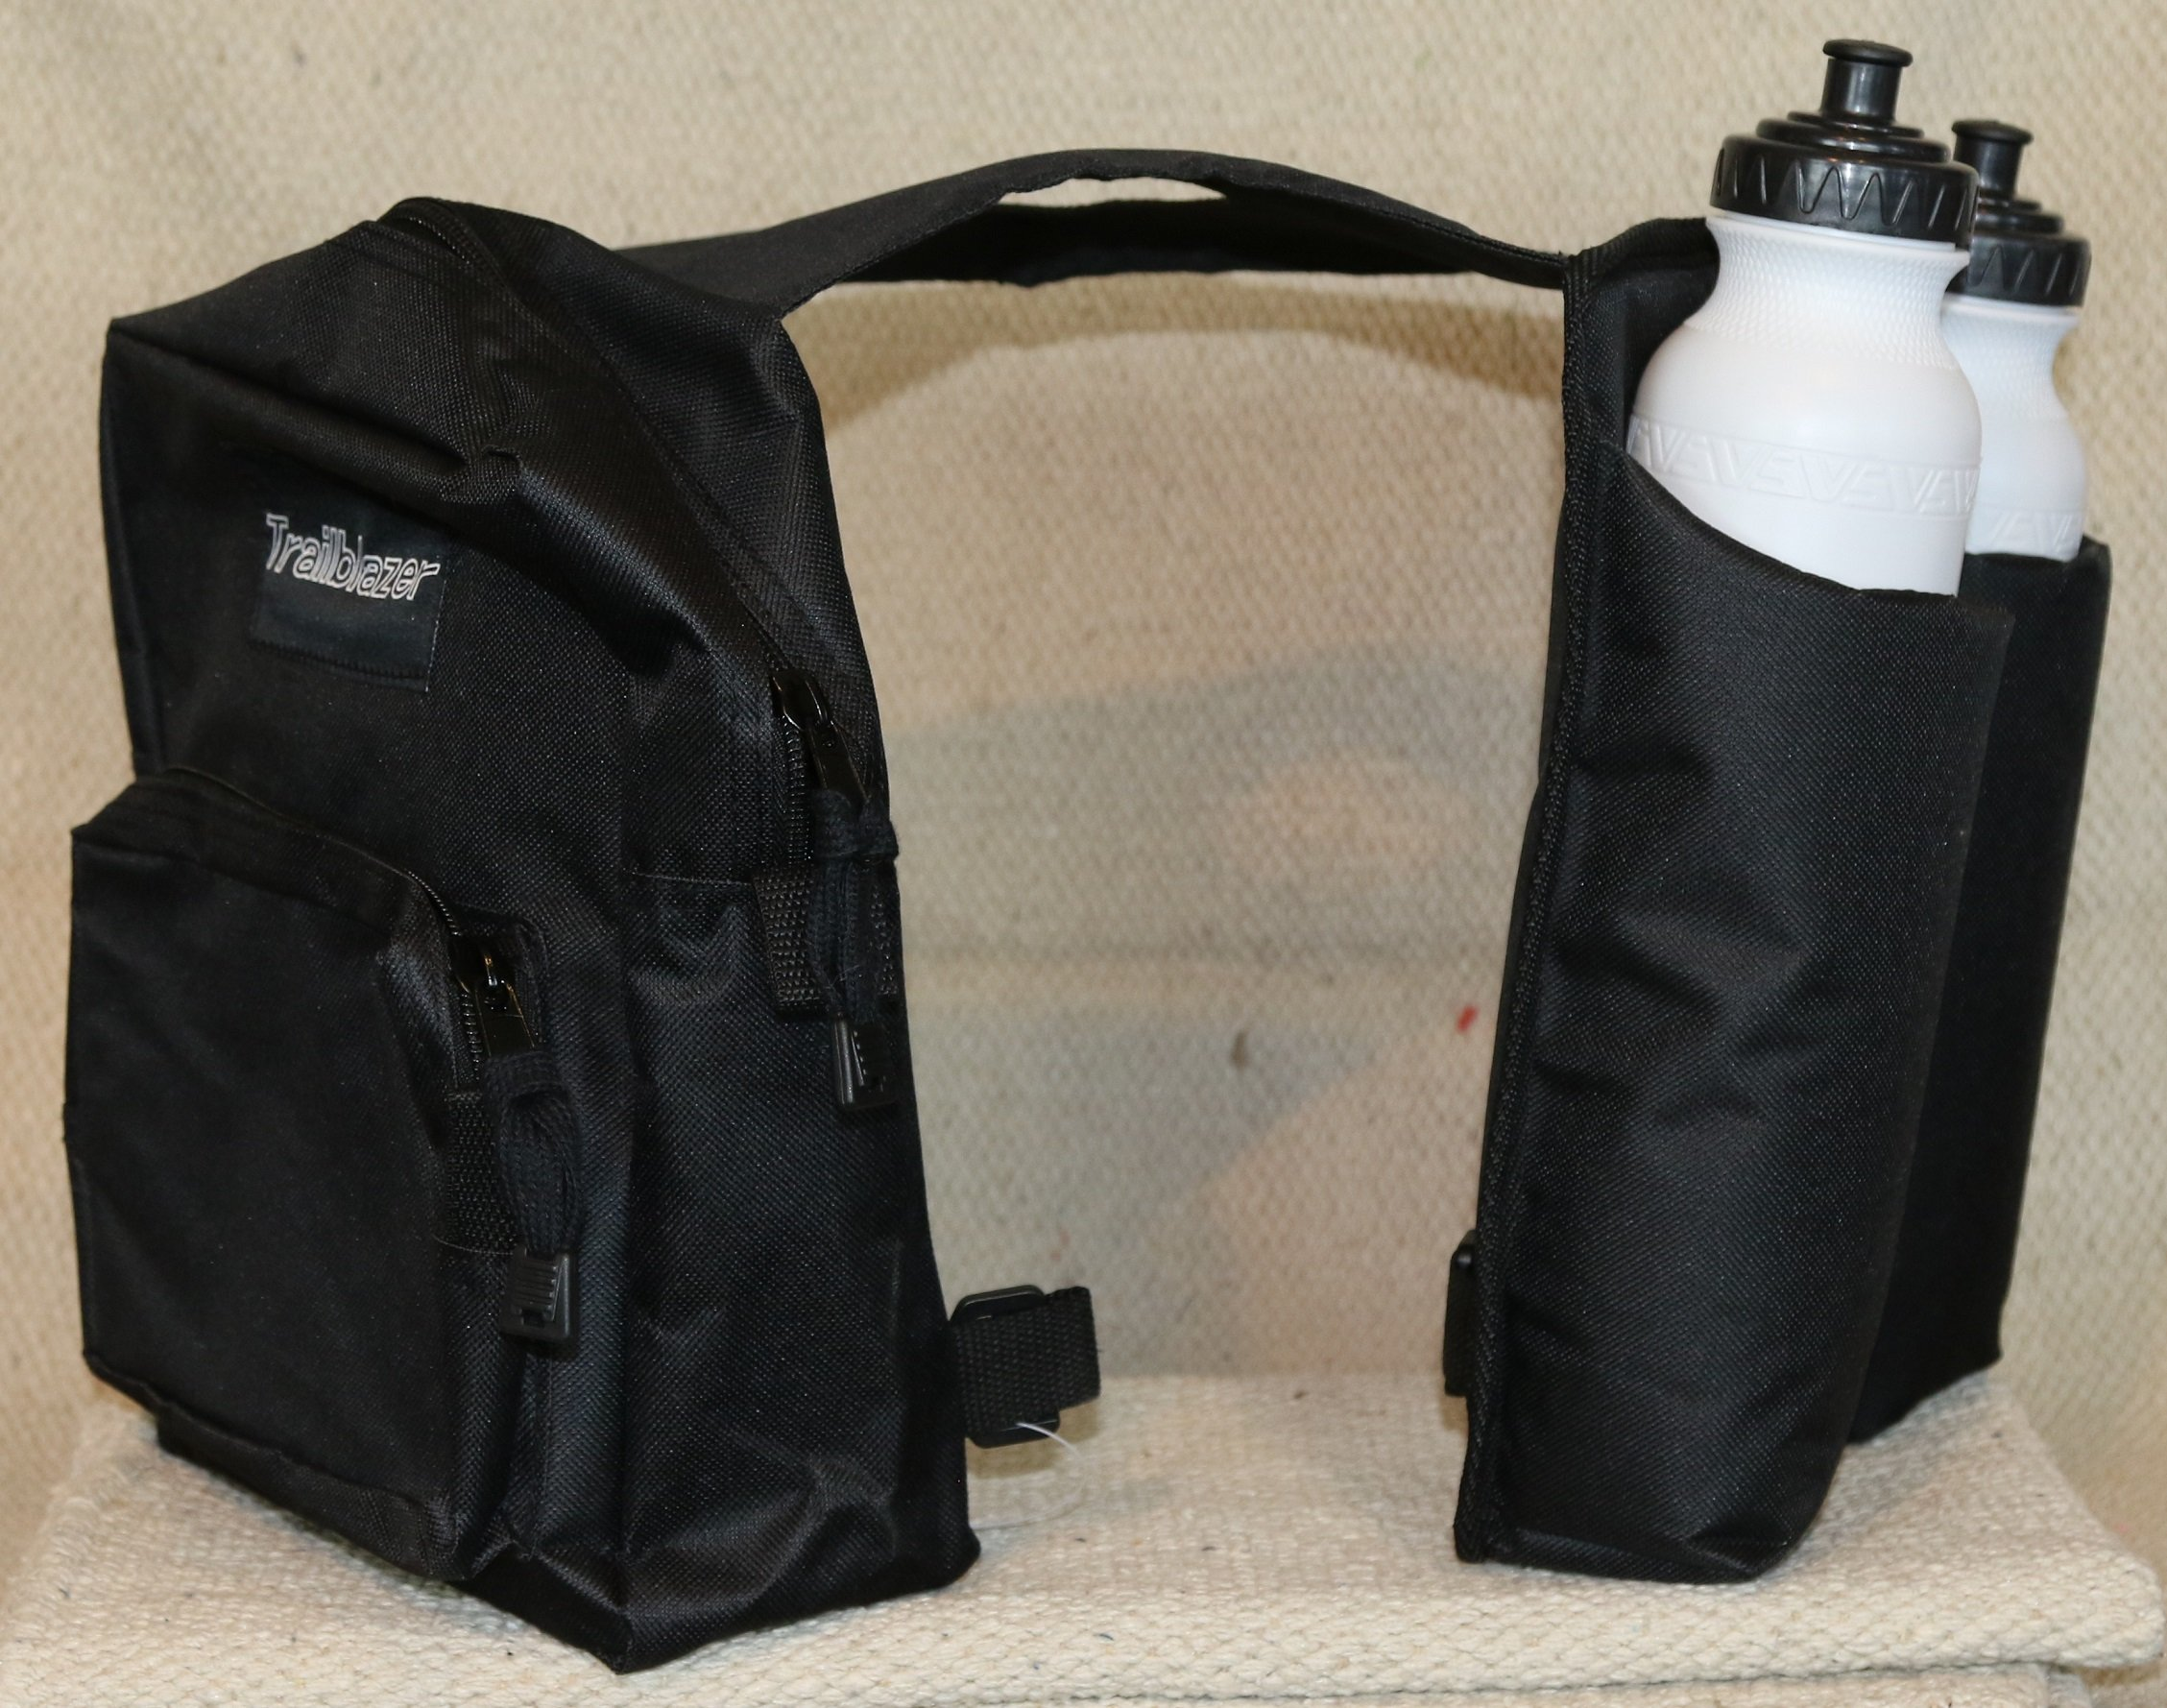 BLACK TRAILBLAZER HORN POMMEL BAG SADDLE BAGS TRAIL WITH 2 WATER BOTTLES